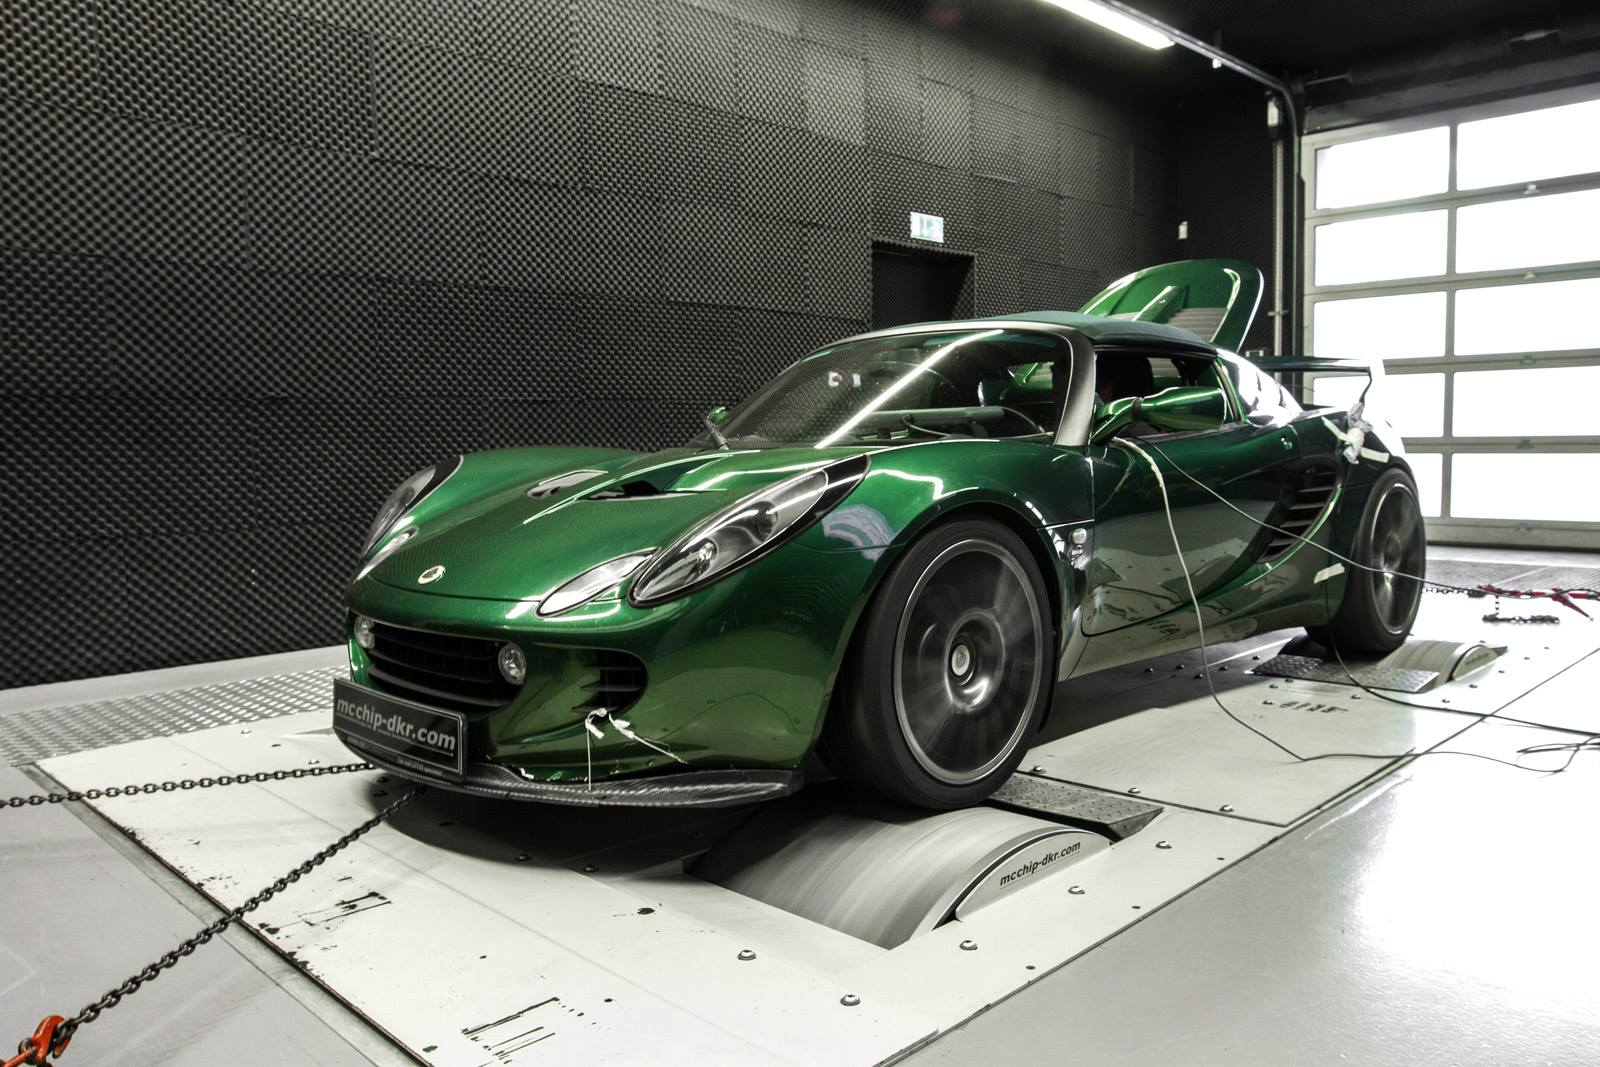 This Lotus Exige Has a Golf GTI 2-Liter Turbo With Over 400 HP ...